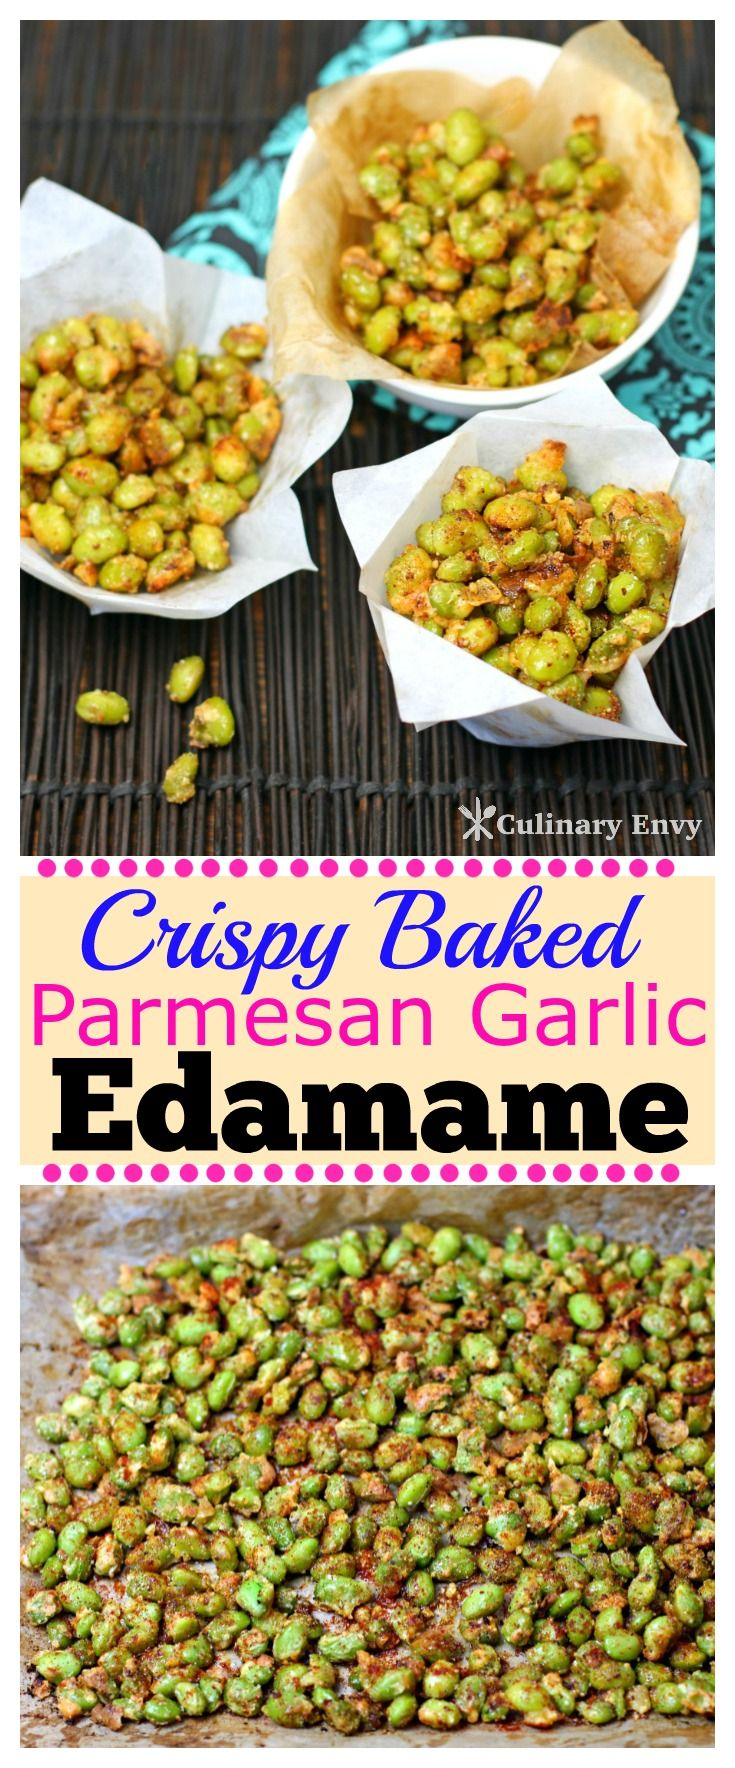 Crispy Baked Parmesan Garlic Edamame is an absolutely delicious high-protein and healthy snack. It takes minutes to prepare and is the ultimate in salty/sweet comfort food munchies! Click to read more!